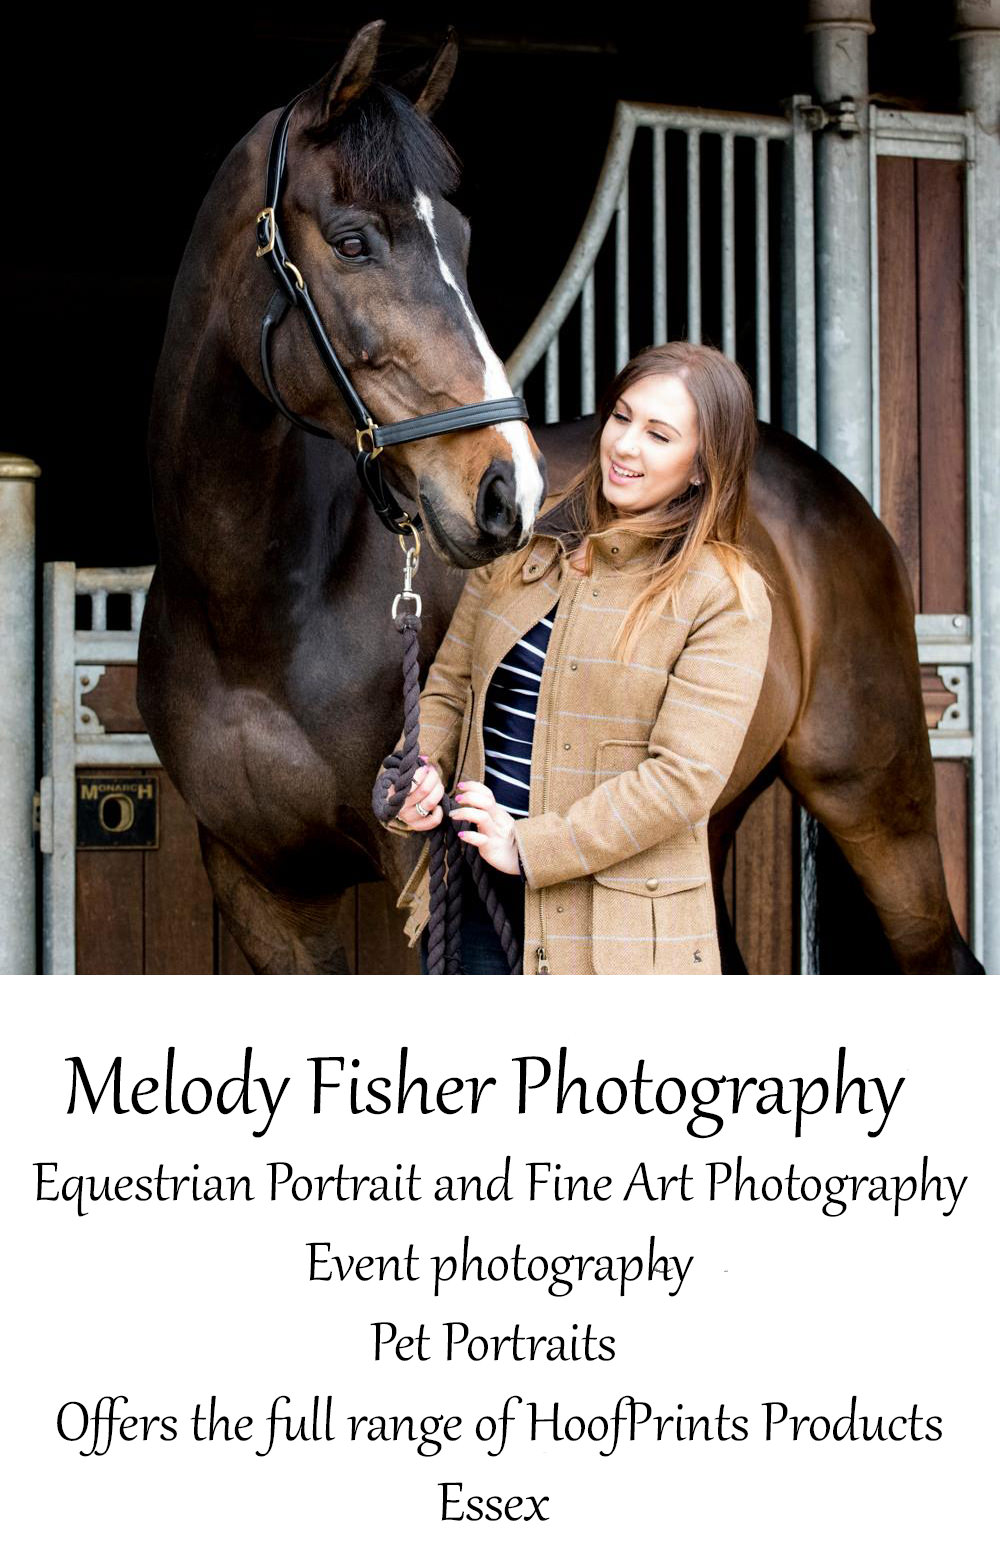 Melody Fisher Photography- Now Offering the Full Range of HoofPrints Products